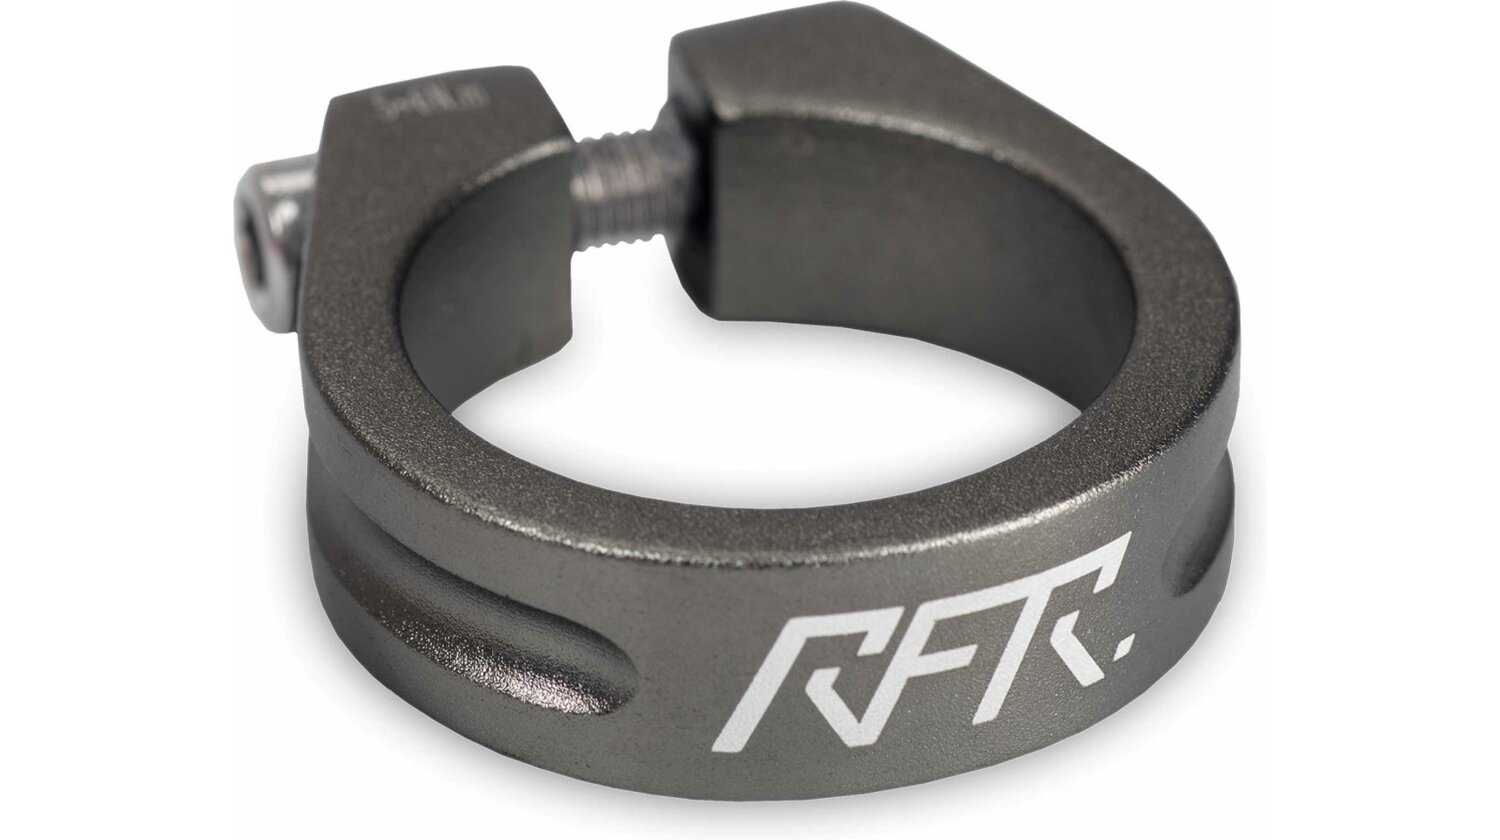 RFR Sattelklemme 34,9 mm grey